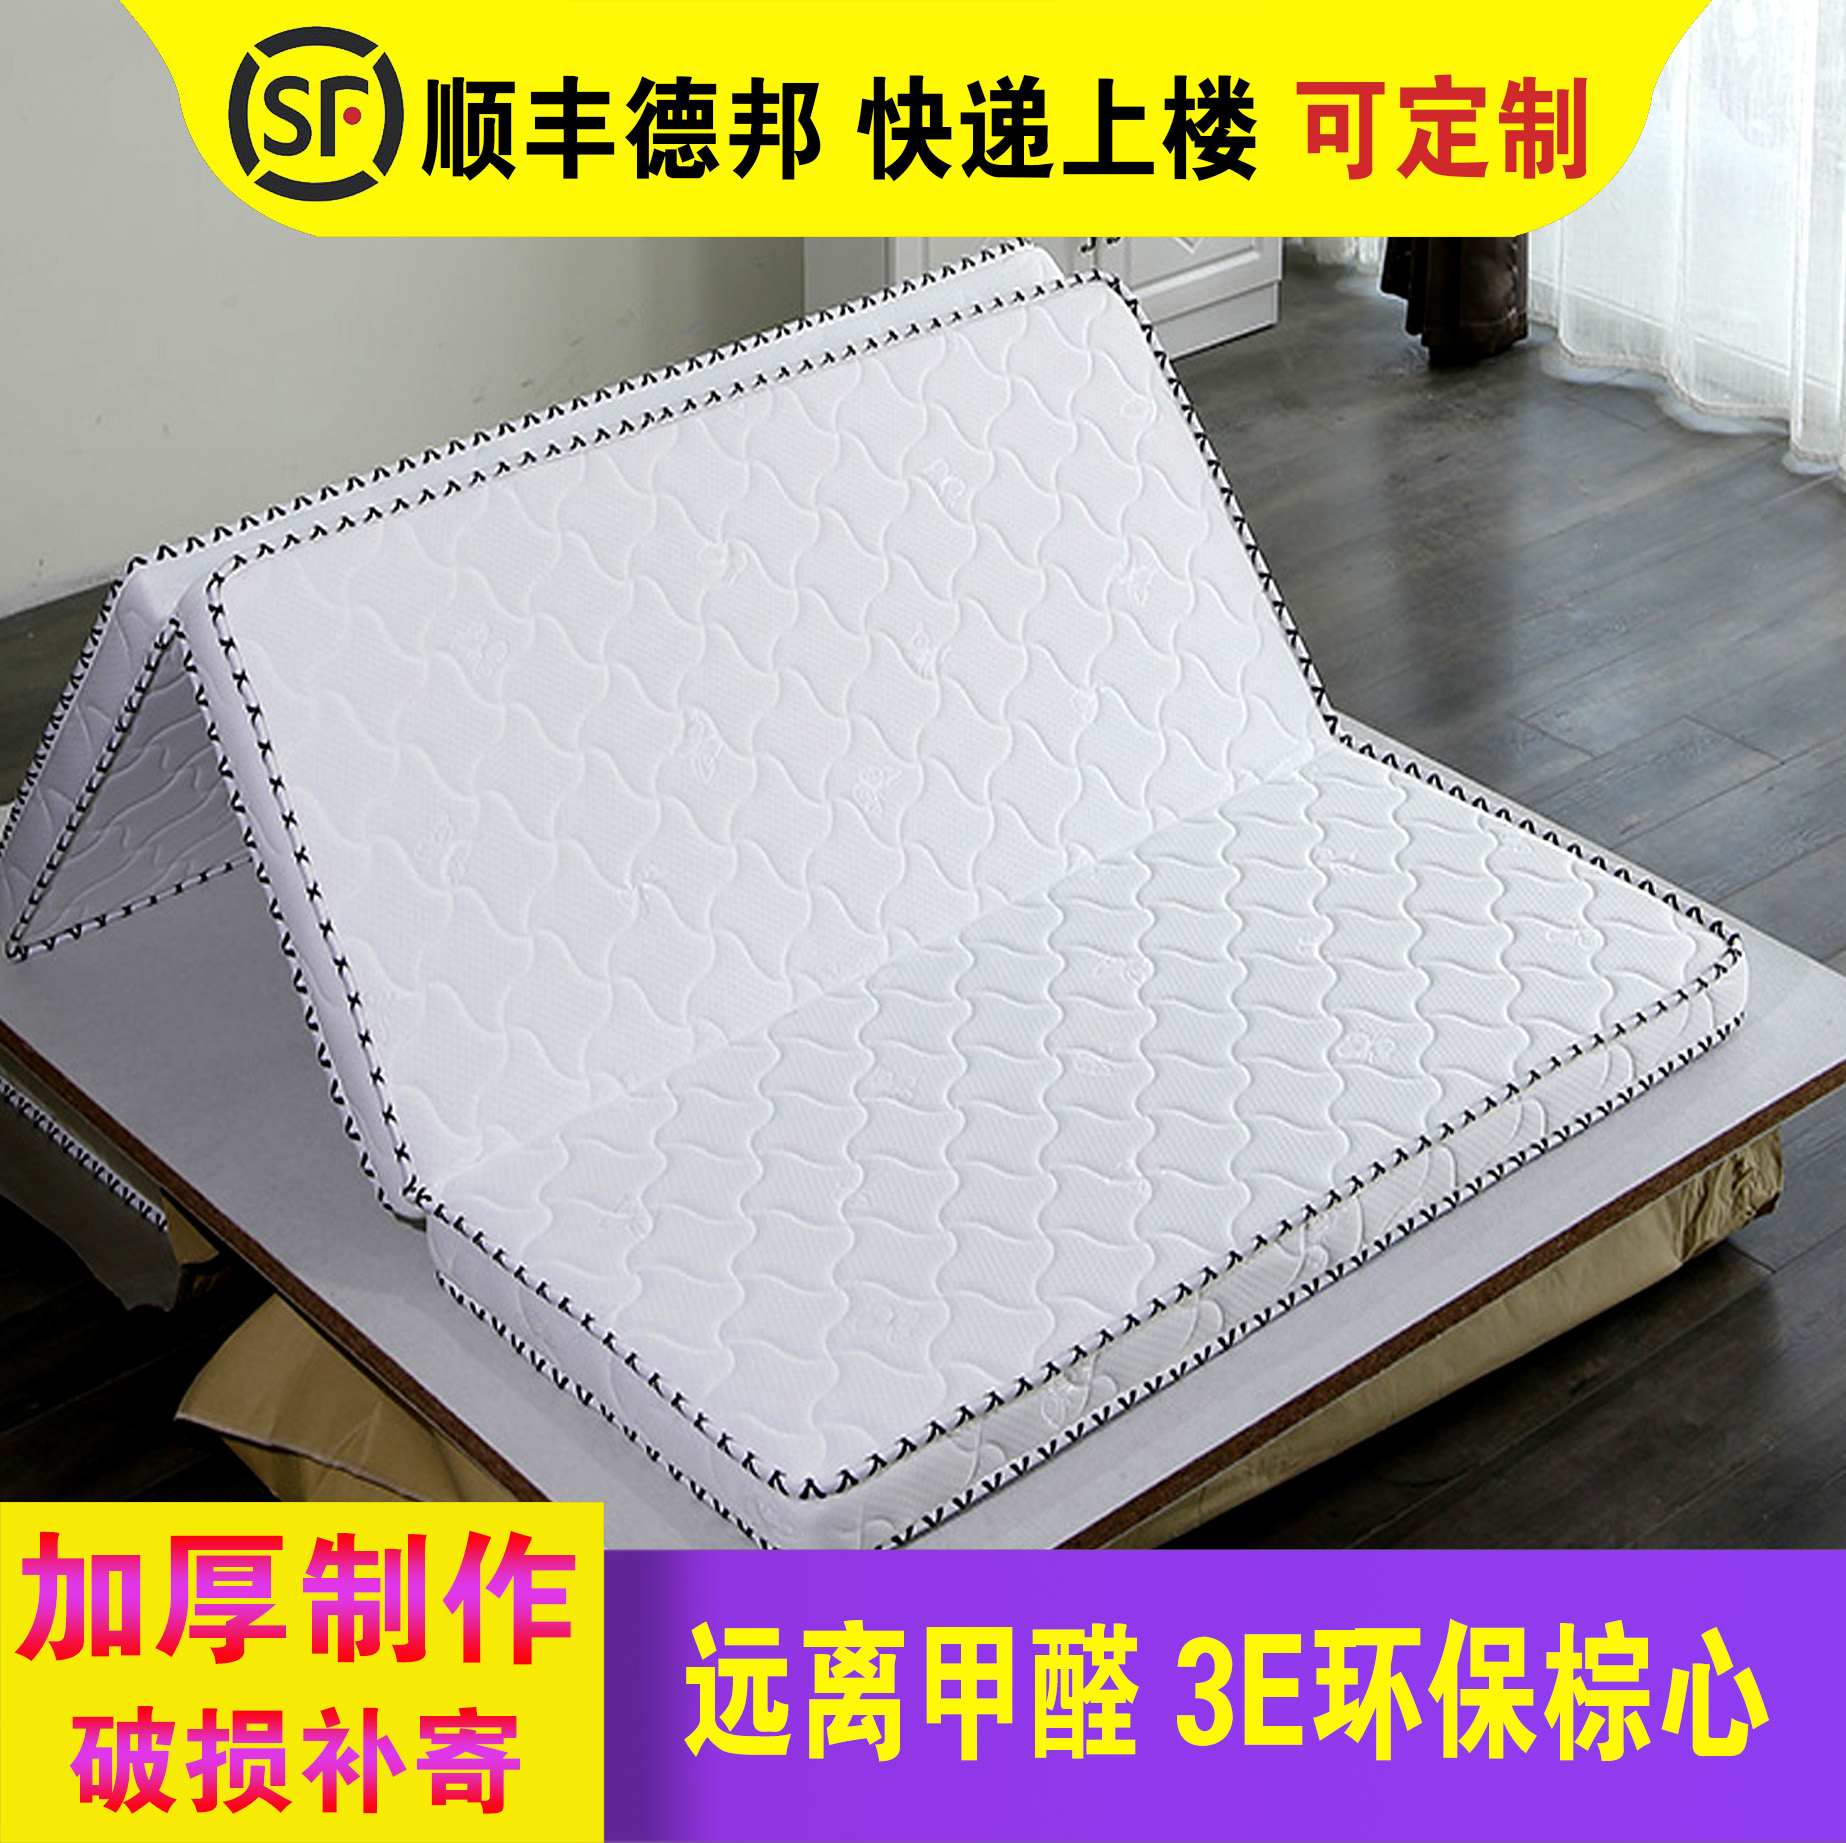 Environmental protection coconut palm hard mattress childrens single and double 1.21.5m1.8m folding and custom-made thickened tatami floor